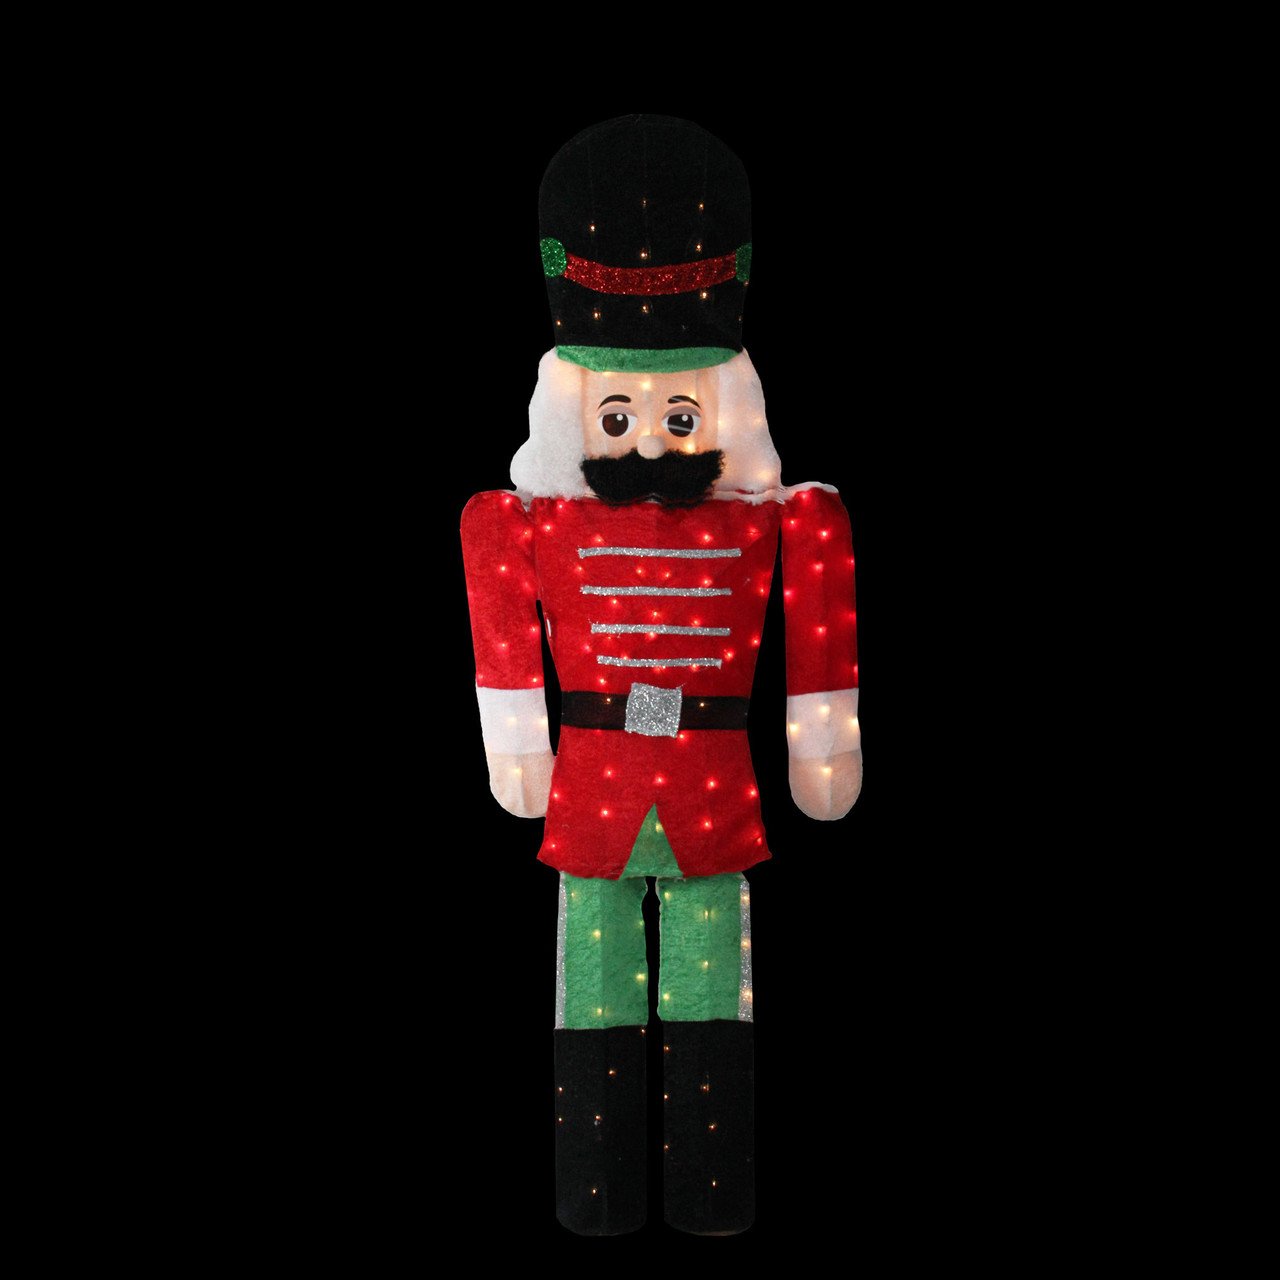 6 pre lit candy cane lane 2 d toy soldier christmas outdoor decoration 32606673 - Outdoor Toy Soldier Christmas Decorations